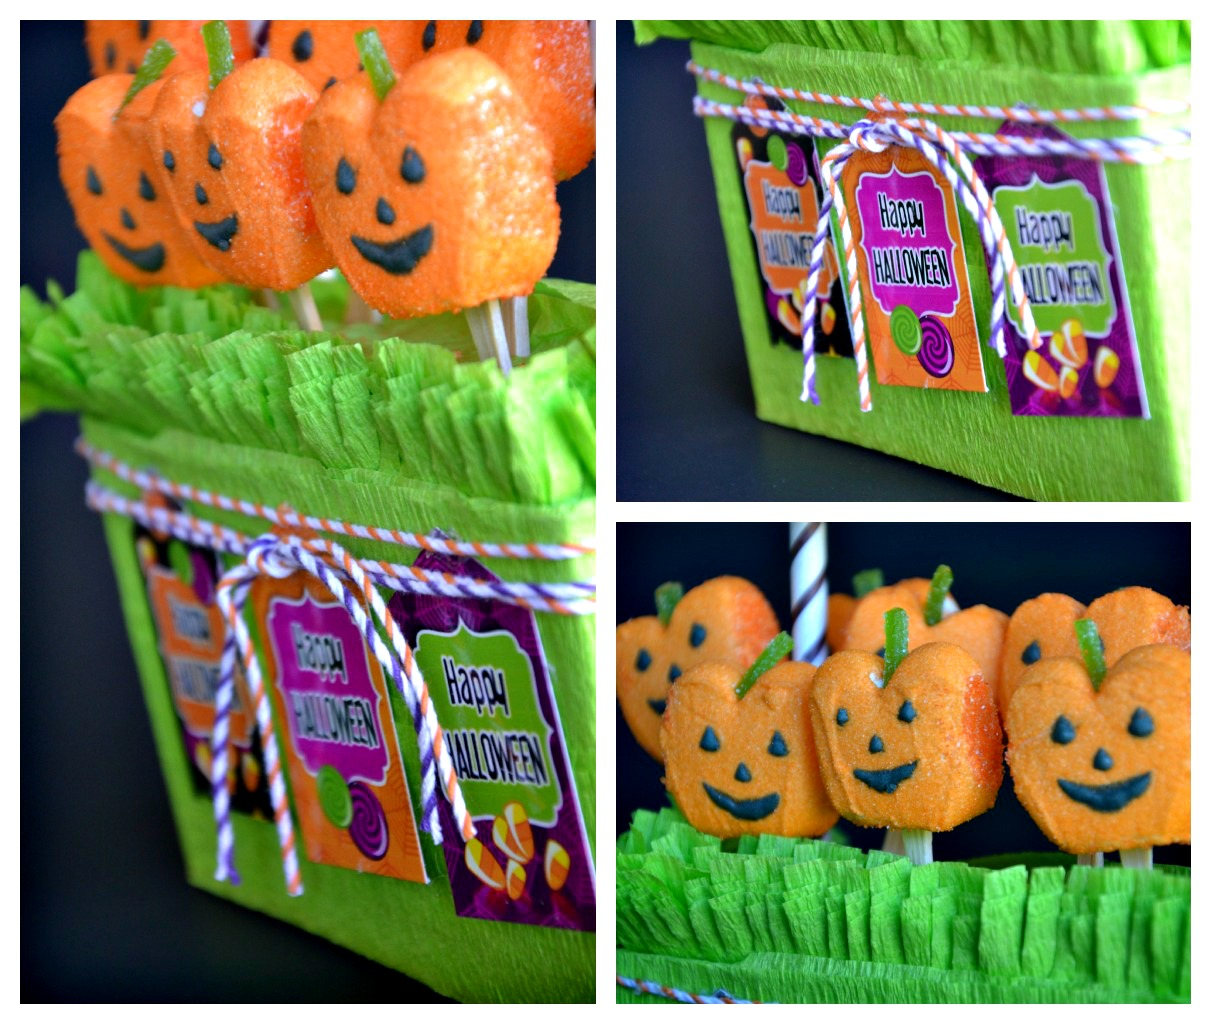 DIY Halloween Candy Displays with Pumpkin Peeps - via BirdsParty.com